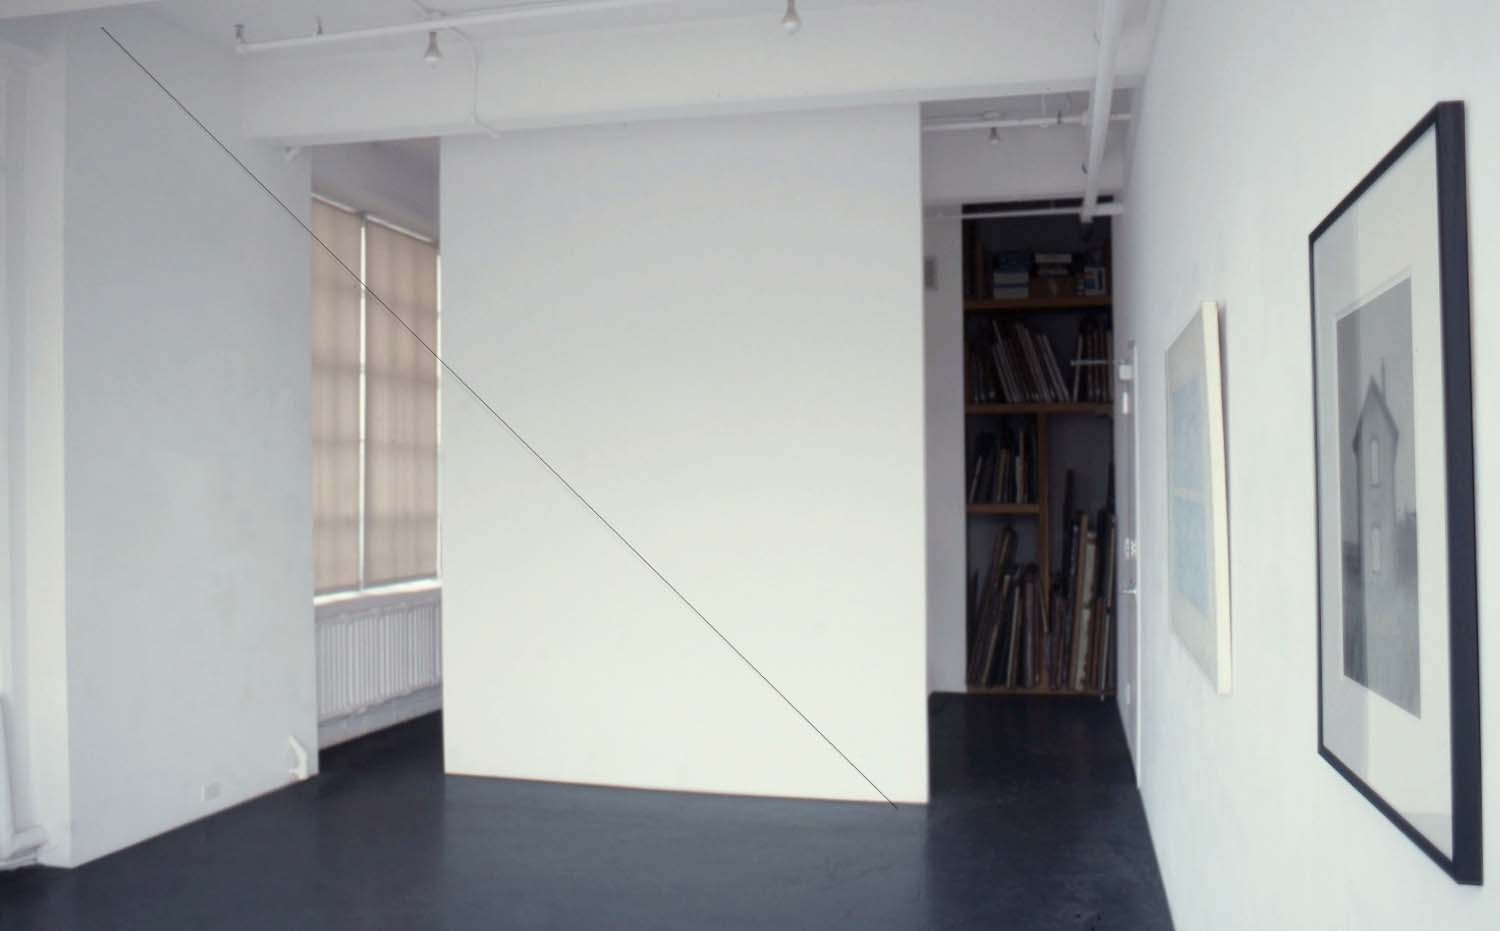 Lawrence Markey Gallery, New York